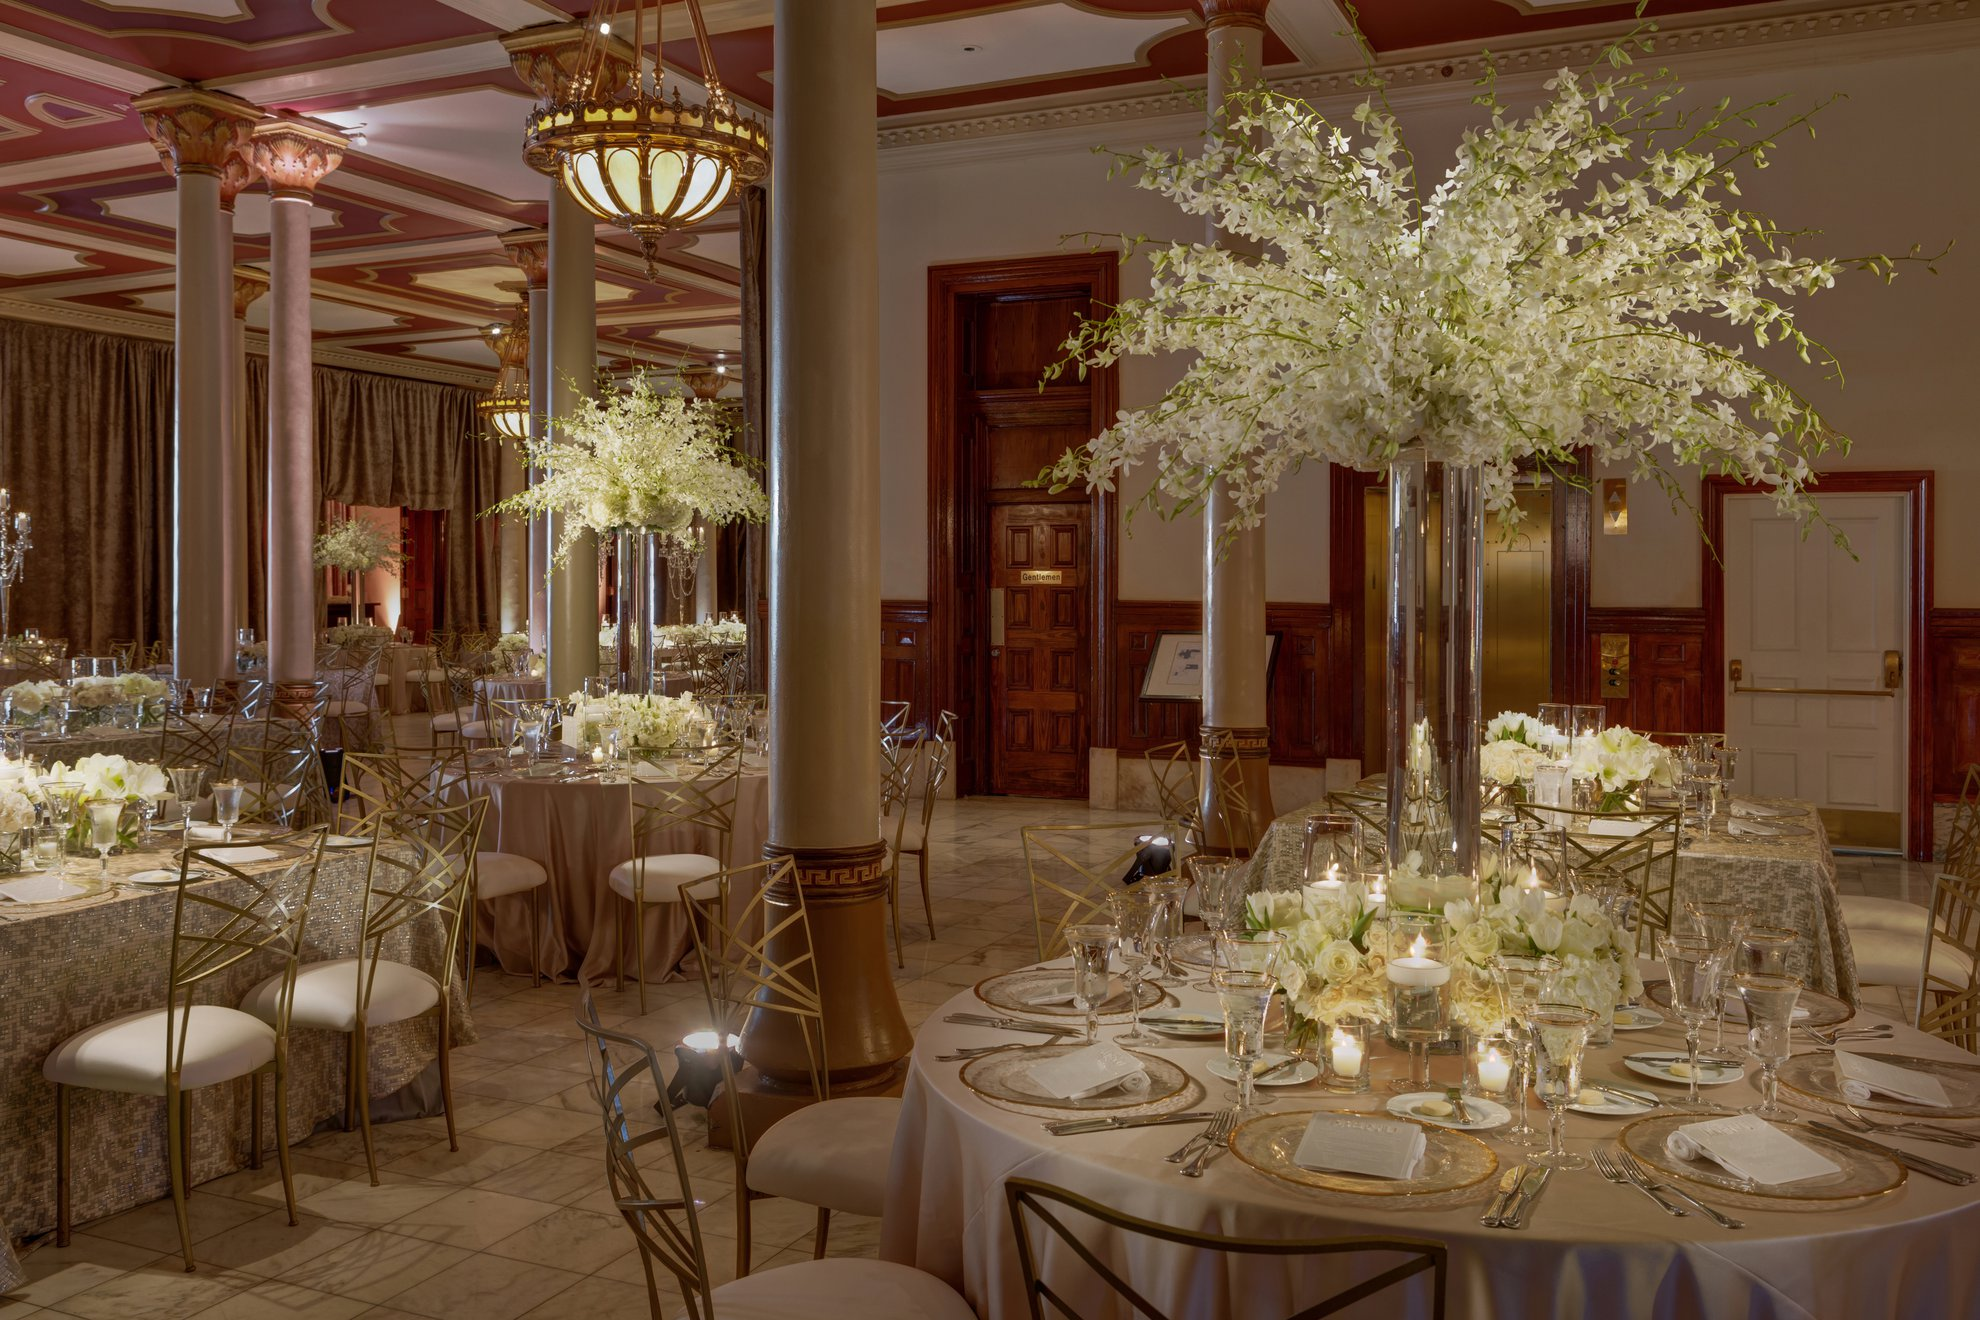 The Driskill Mezzanine Wedding Reception